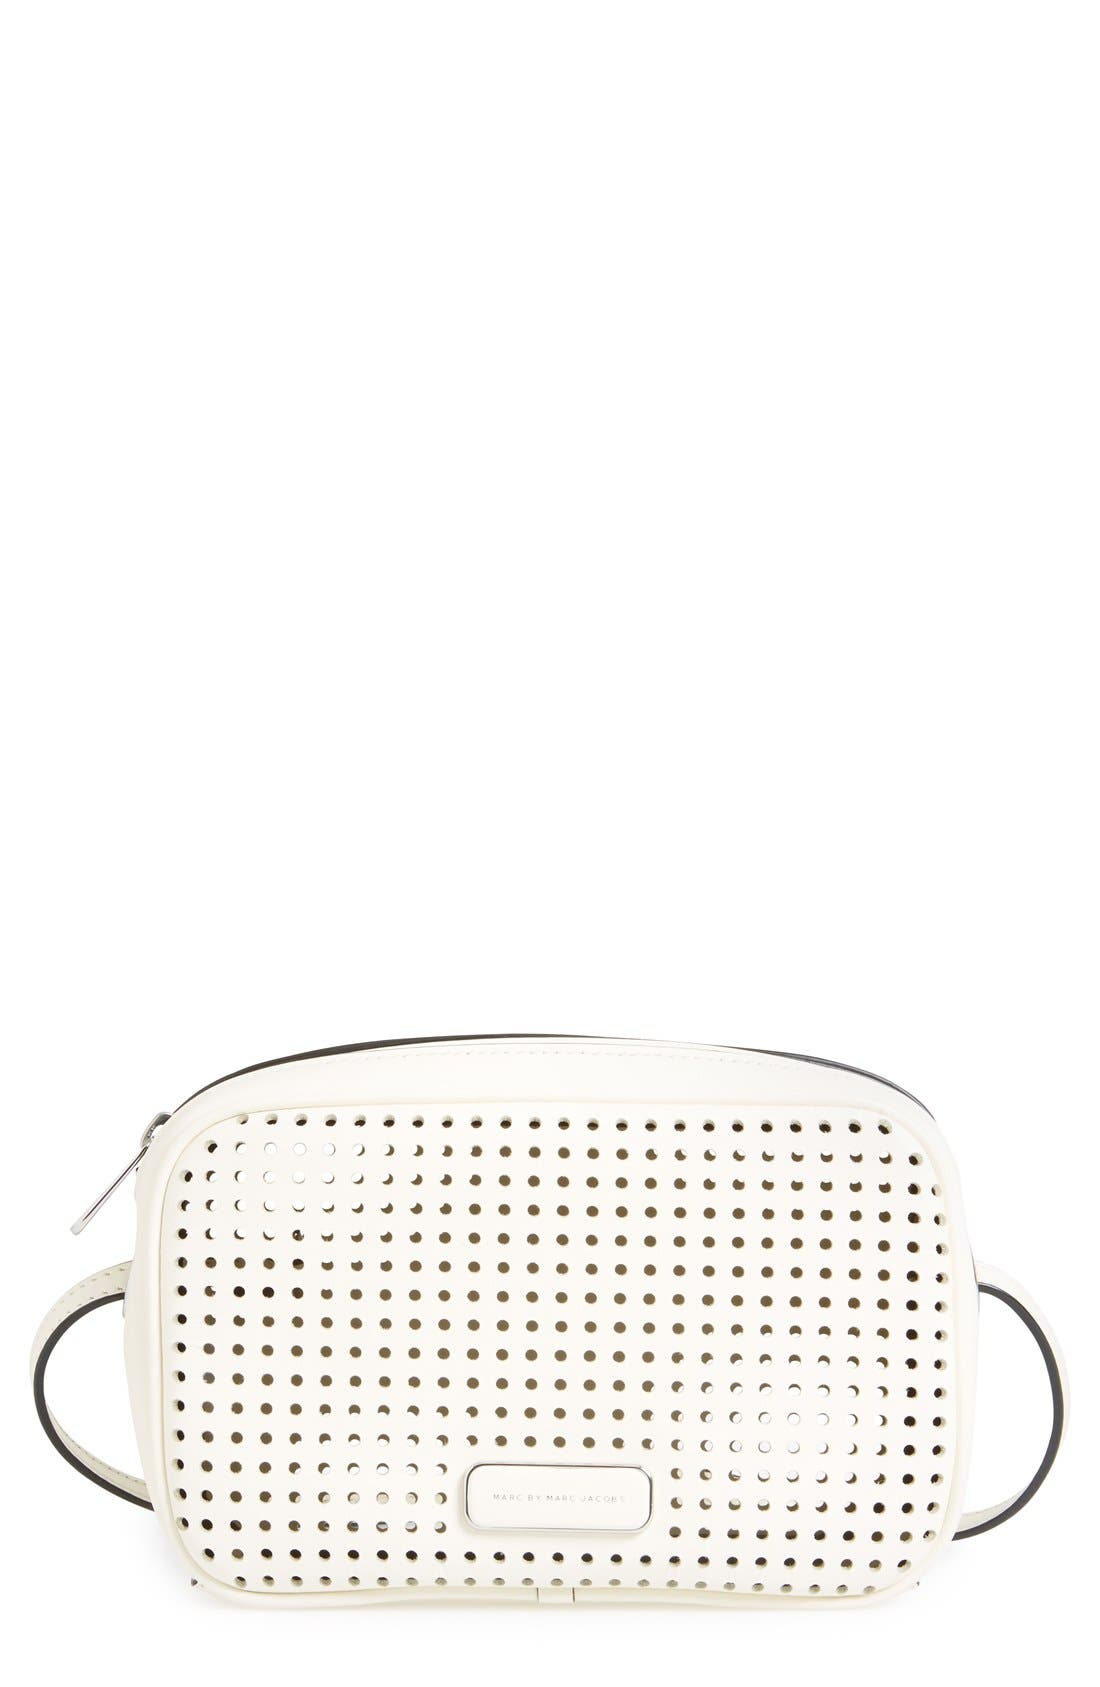 Alternate Image 1 Selected - MARC BY MARC JACOBS 'Sally' Perforated Crossbody Bag